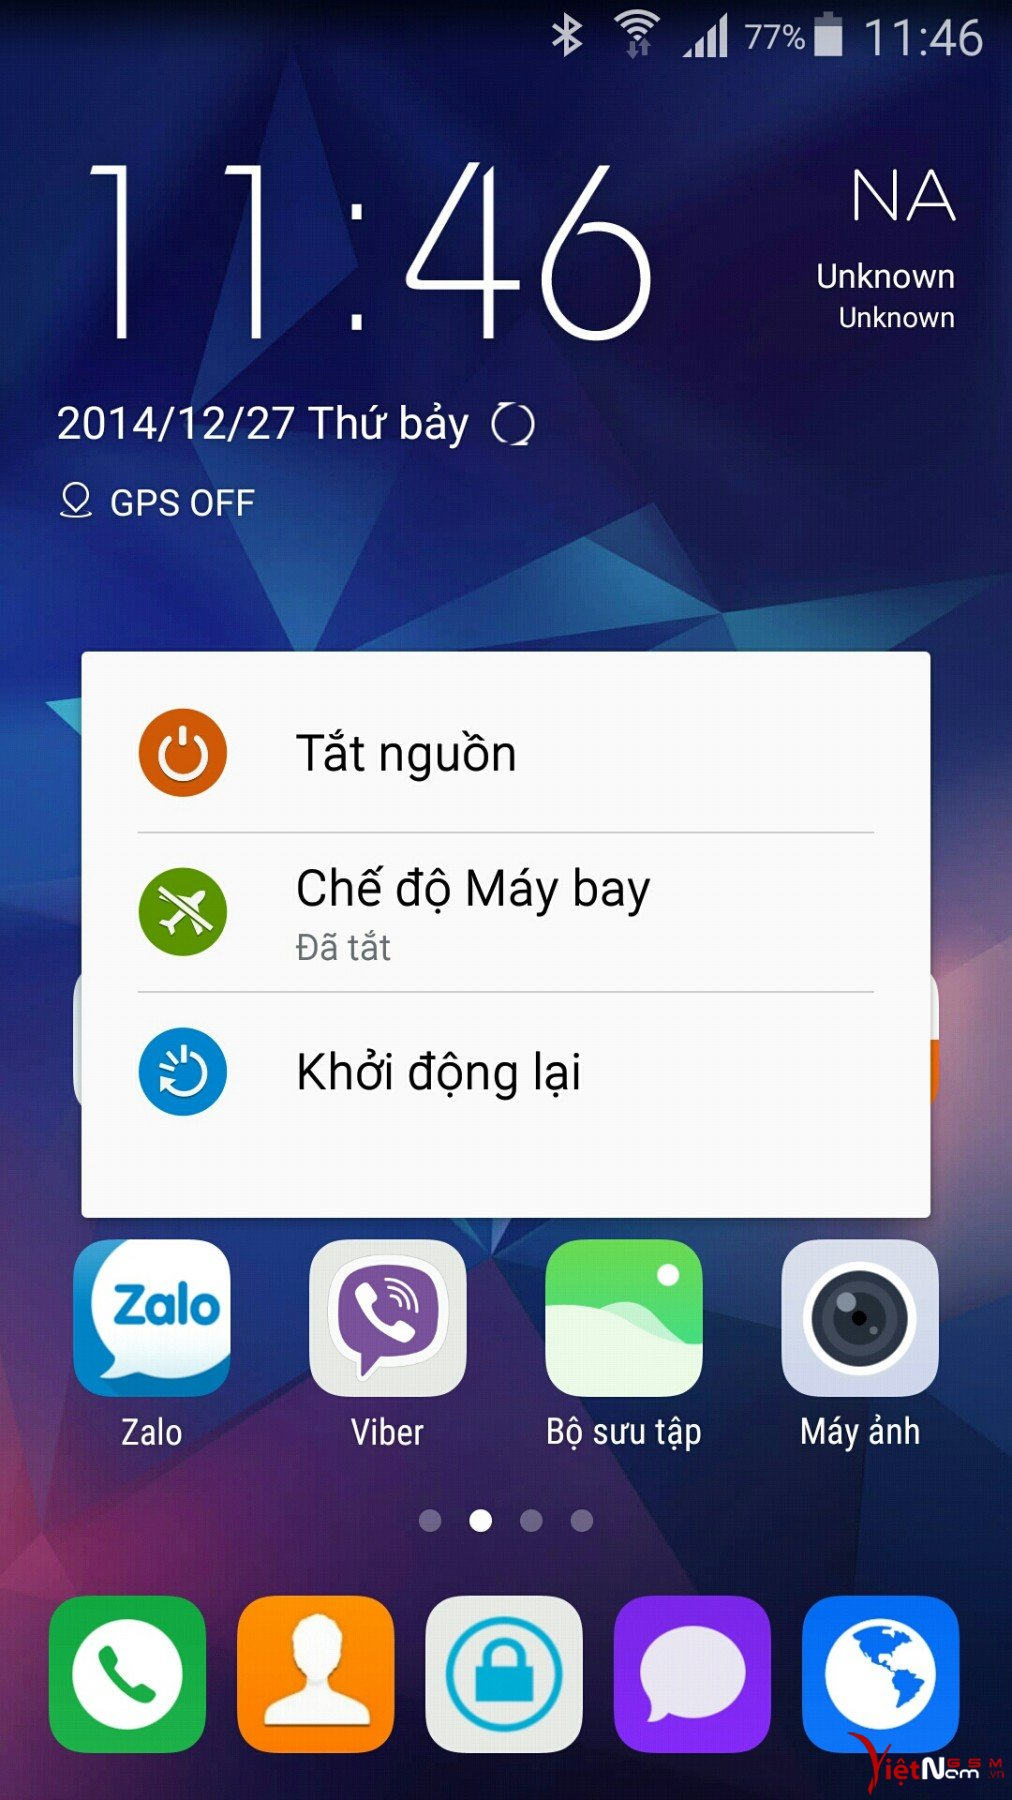 Screenshot_2014-12-27-11-47-07.jpg